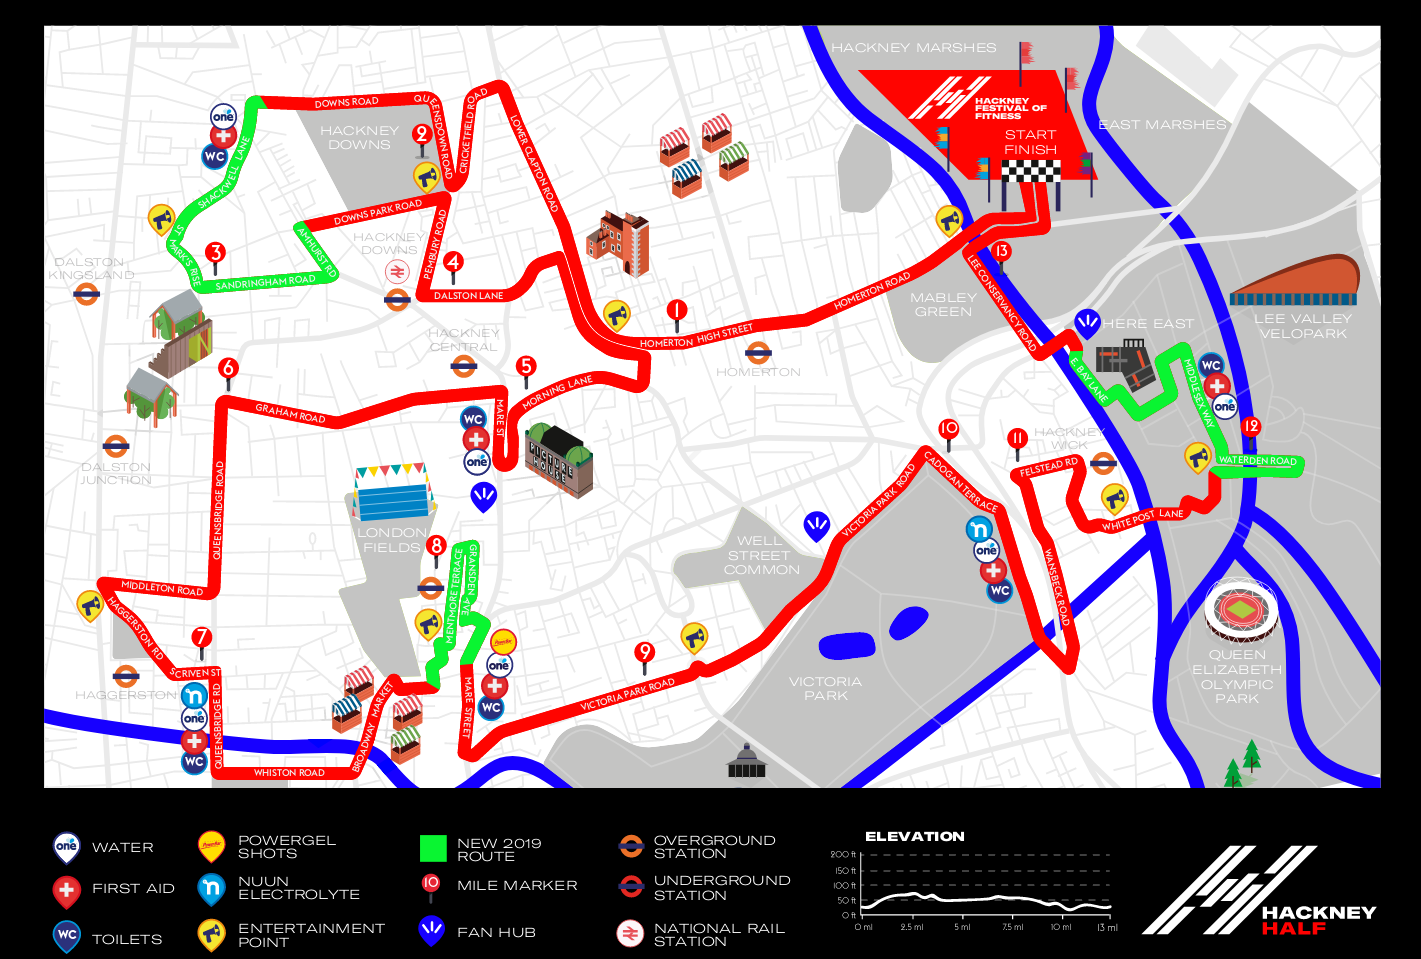 Hackney Half 2019 Course Map